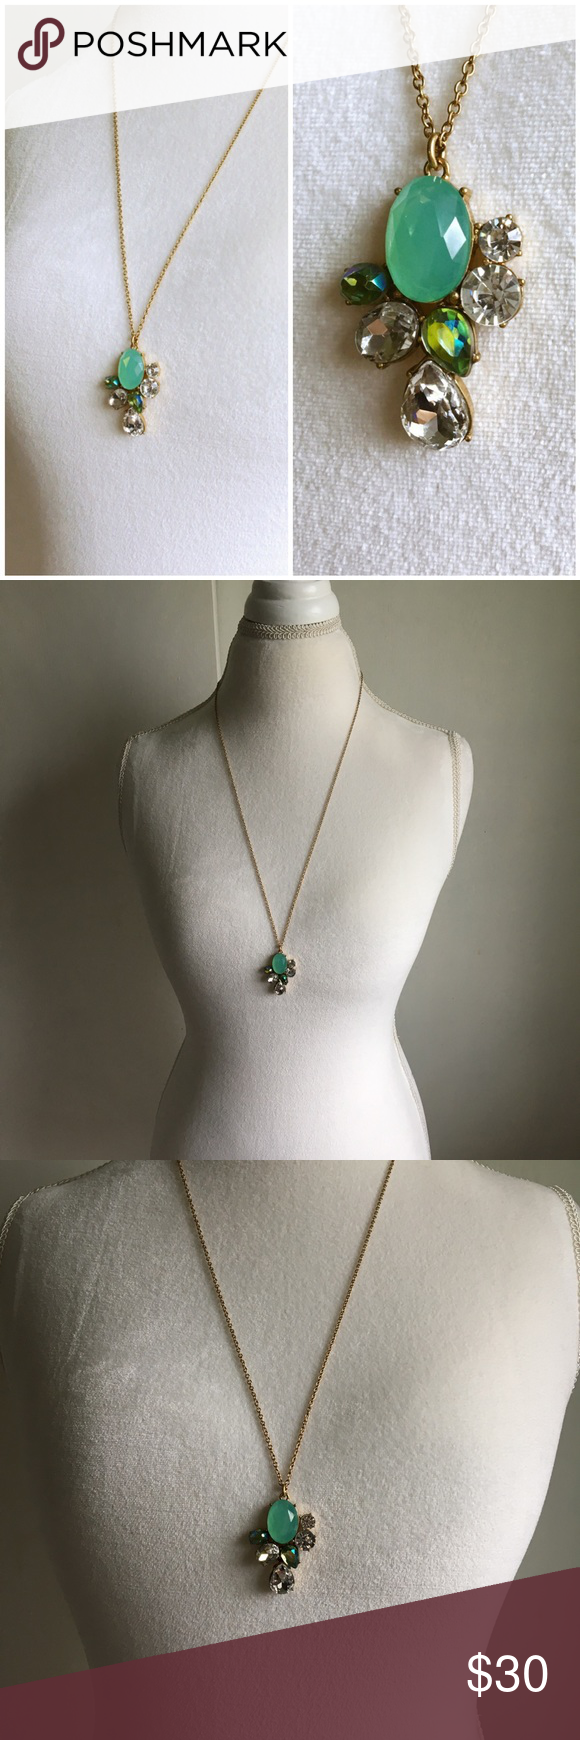 J crew long necklace teal bling and crystals